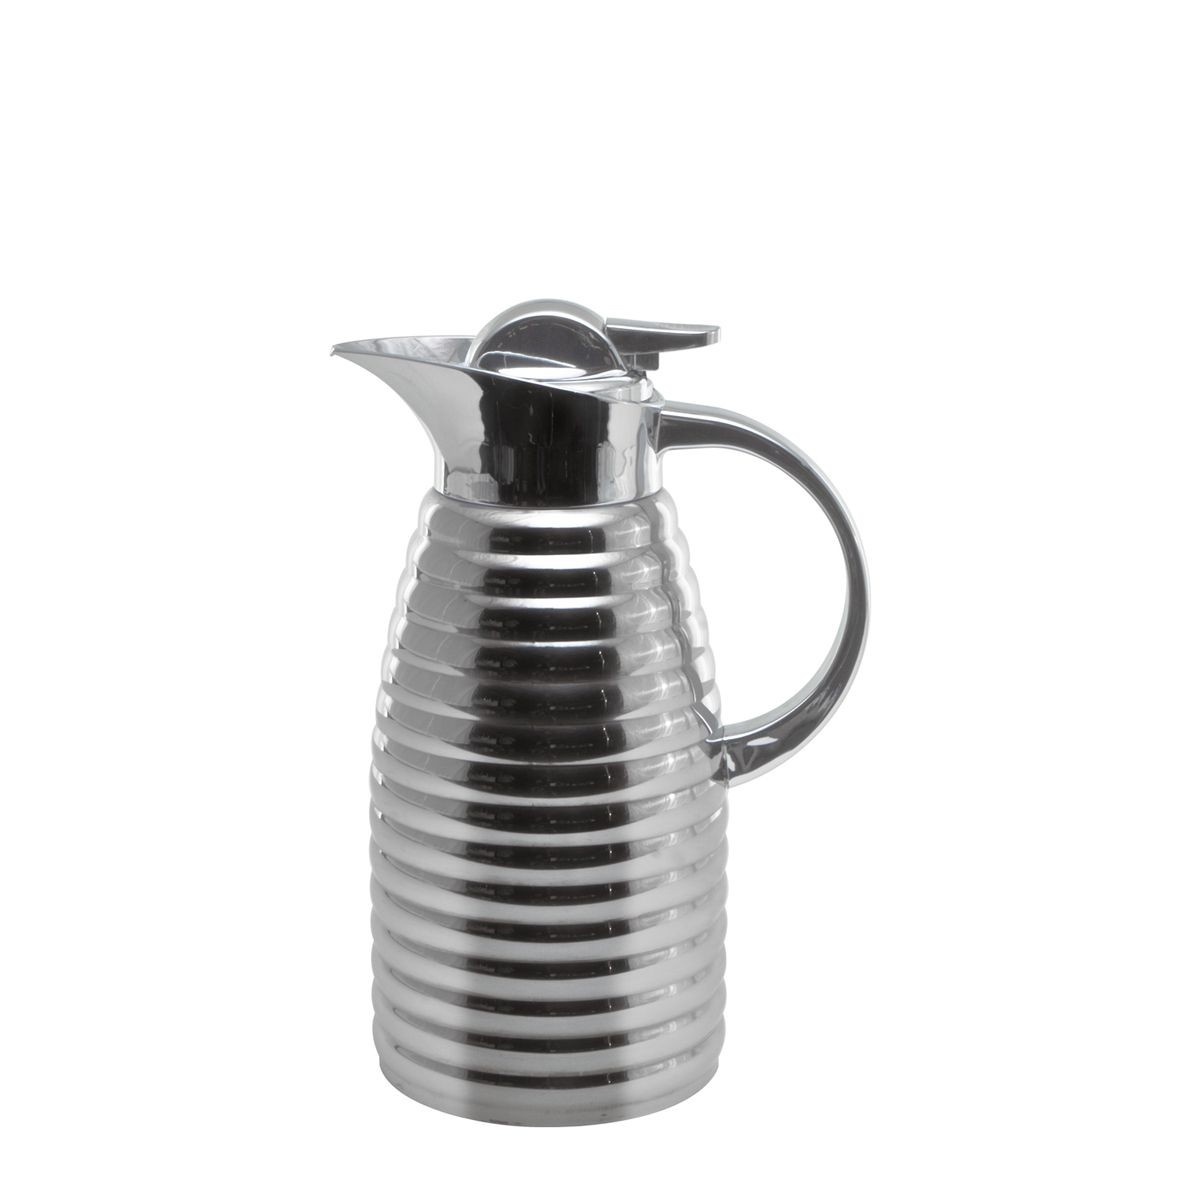 Service Ideas RLVP1500 Bumblebee Elite Stainless Steel Server, 1.5 Liter (51 oz.)